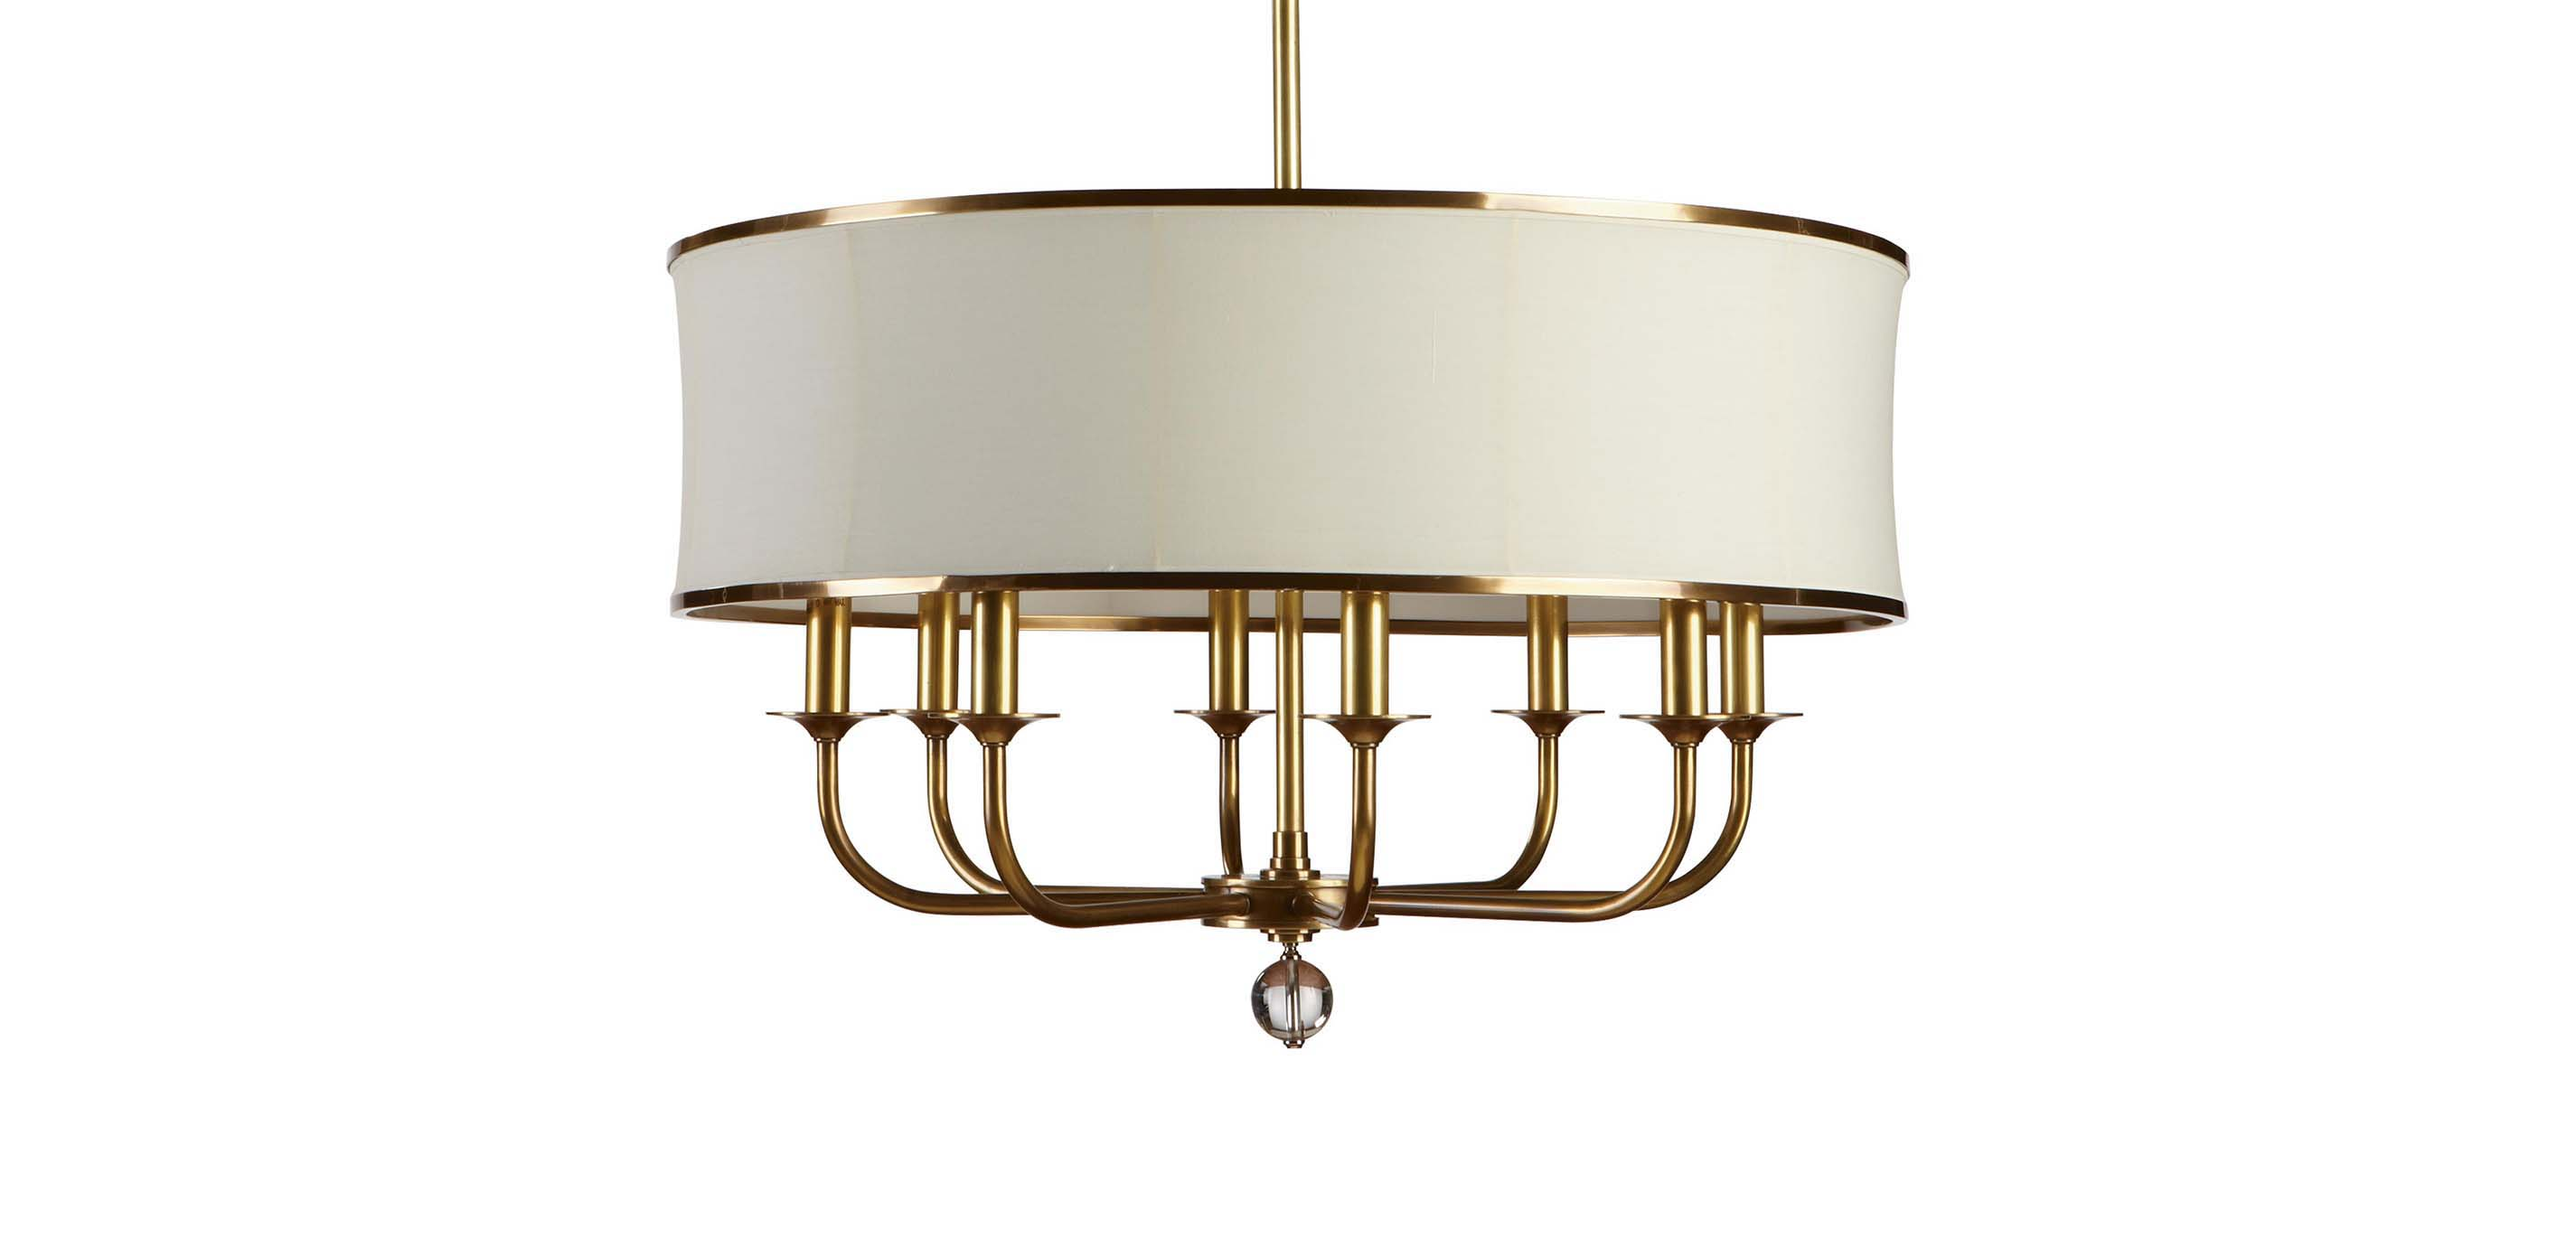 Zoe eight light brass chandelier chandeliers images zoe eight light brass chandelier largegray arubaitofo Choice Image